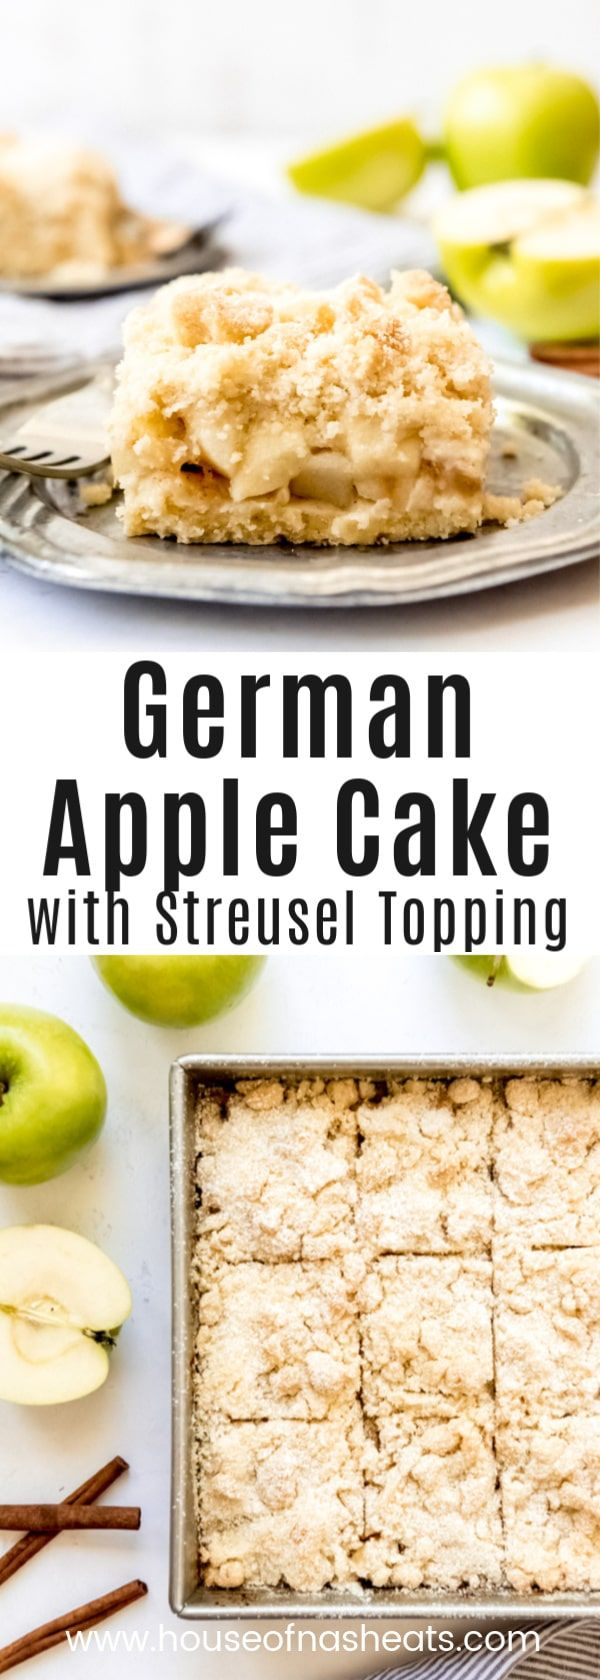 German Apple Cake with Streusel Topping [Apfelkuchen mit Streusel] - House of Nash Eats